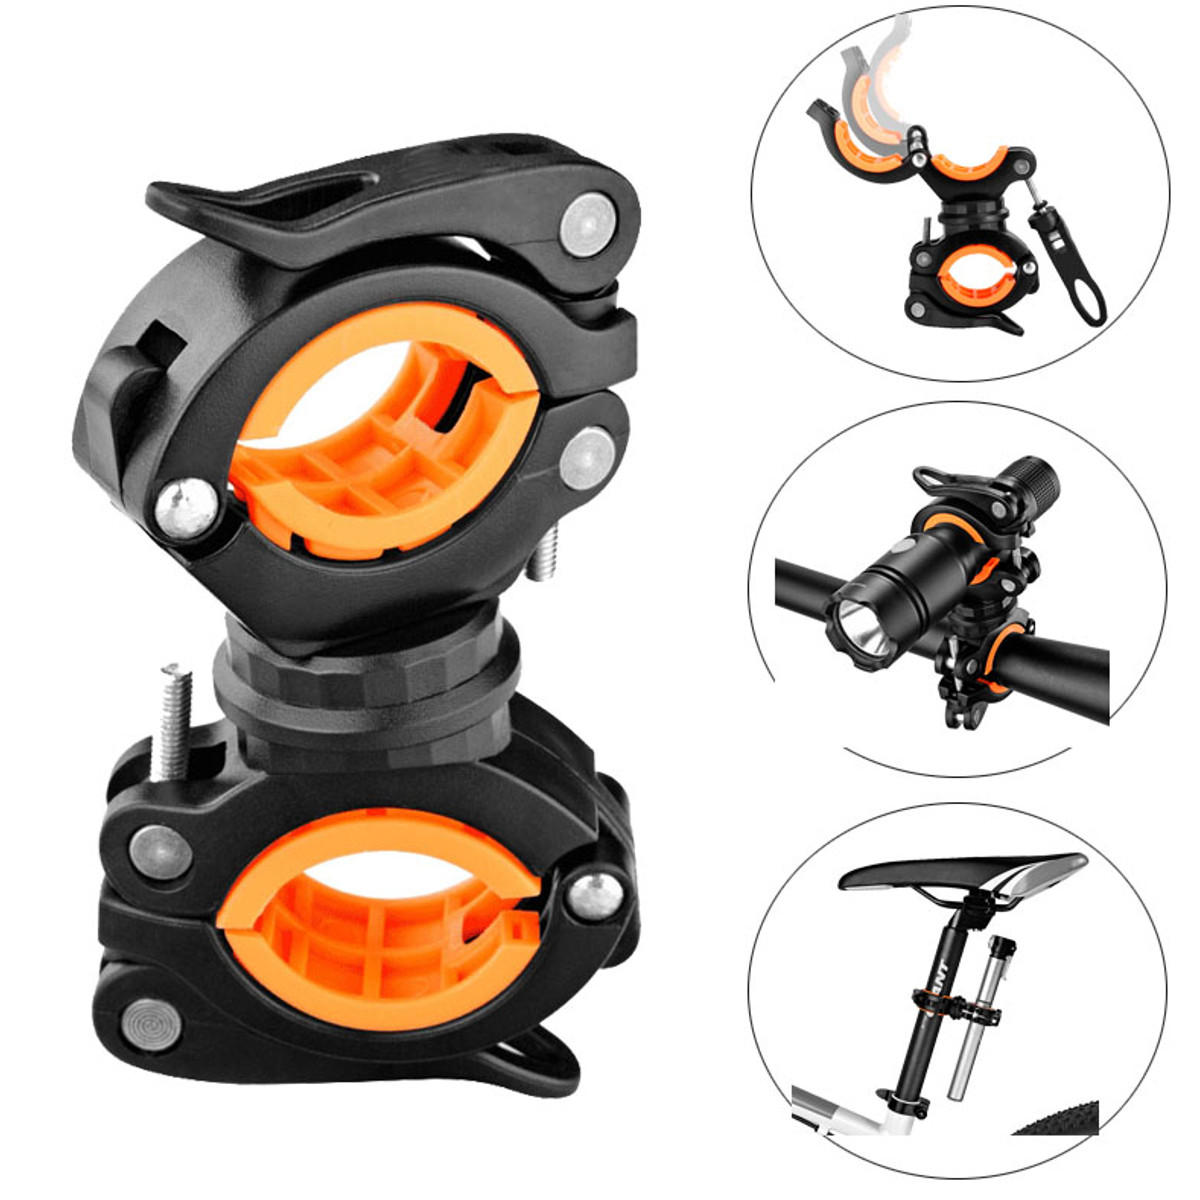 360° Rotation Bike Light Mount Flashlight Crutch Stick Cane Grip Holder Clamp Bracket For Electric Bicycle Scooter